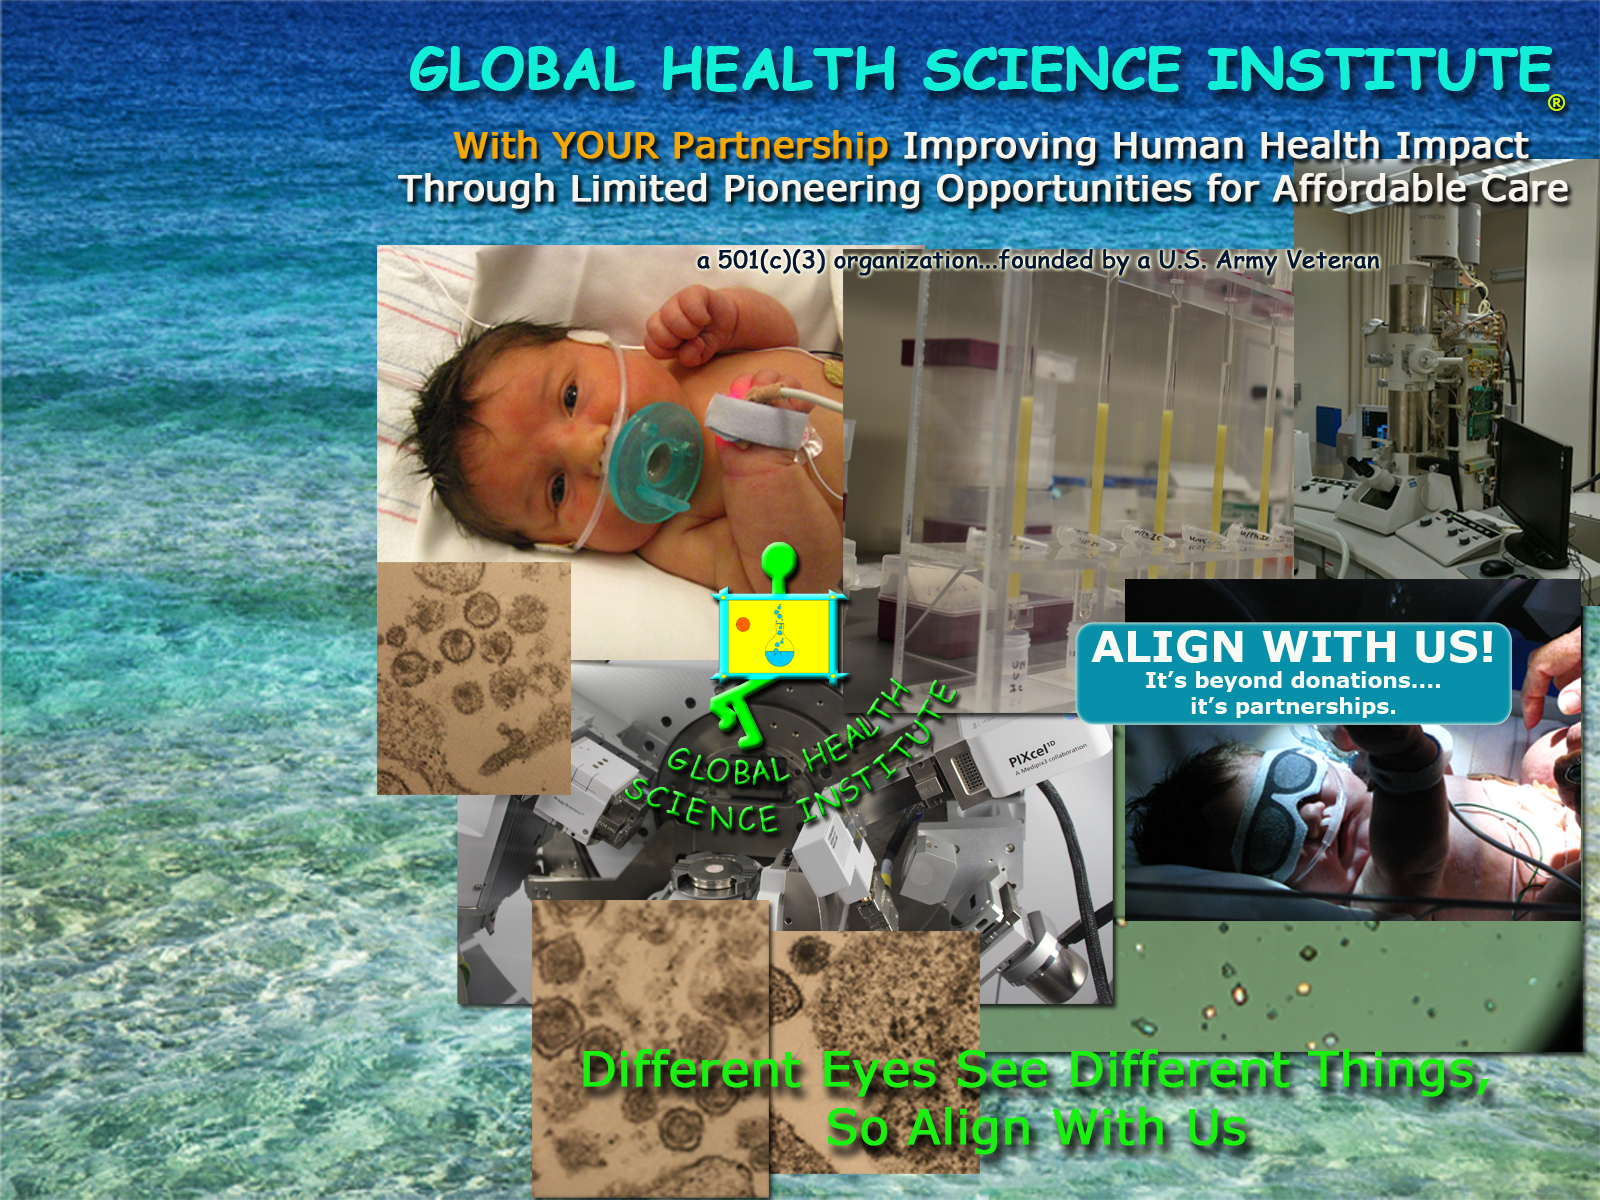 Global Health Science Institute: Different Eyes See Different Things, So Align With Us To Change Lives NOW And Not IN TEN YEARS.